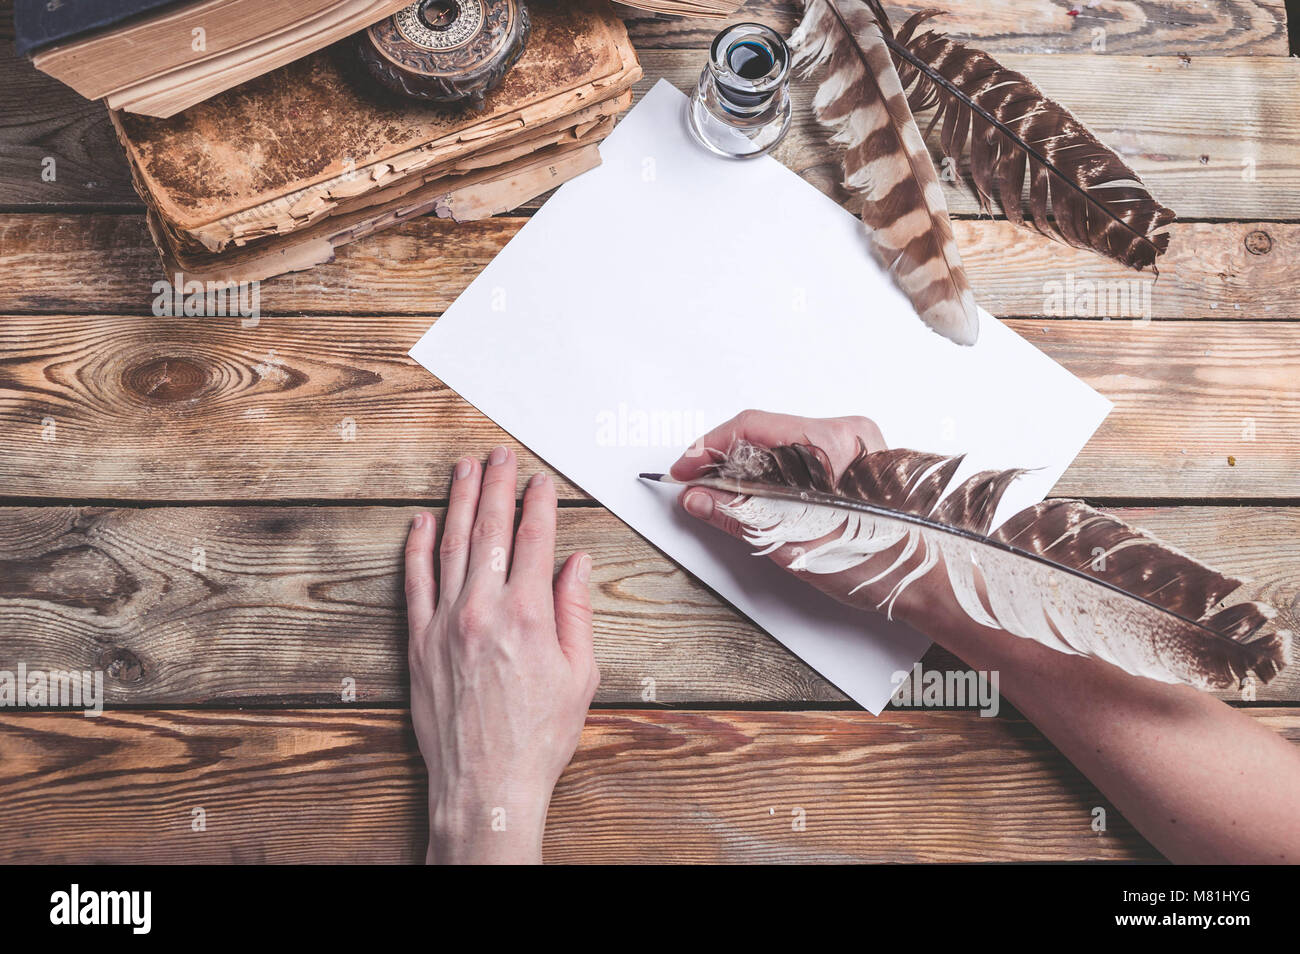 The female hand writes the letter with feather quill pen. Old books, compass on a wooden background. Retro style - Stock Image